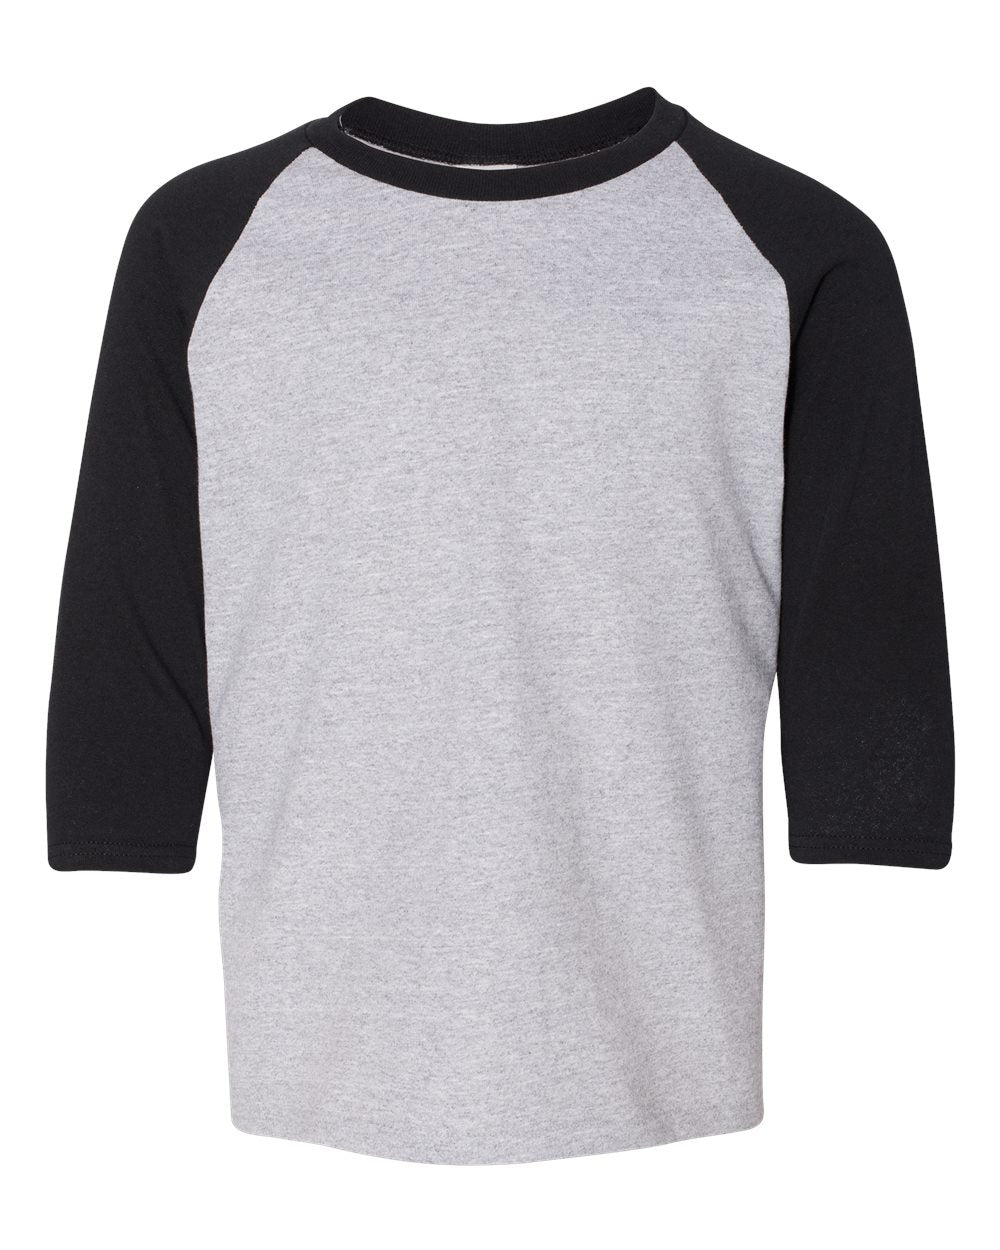 Youth Heavy Cotton™ 5.3 oz. 3/4-Raglan Sleeve T-Shirt